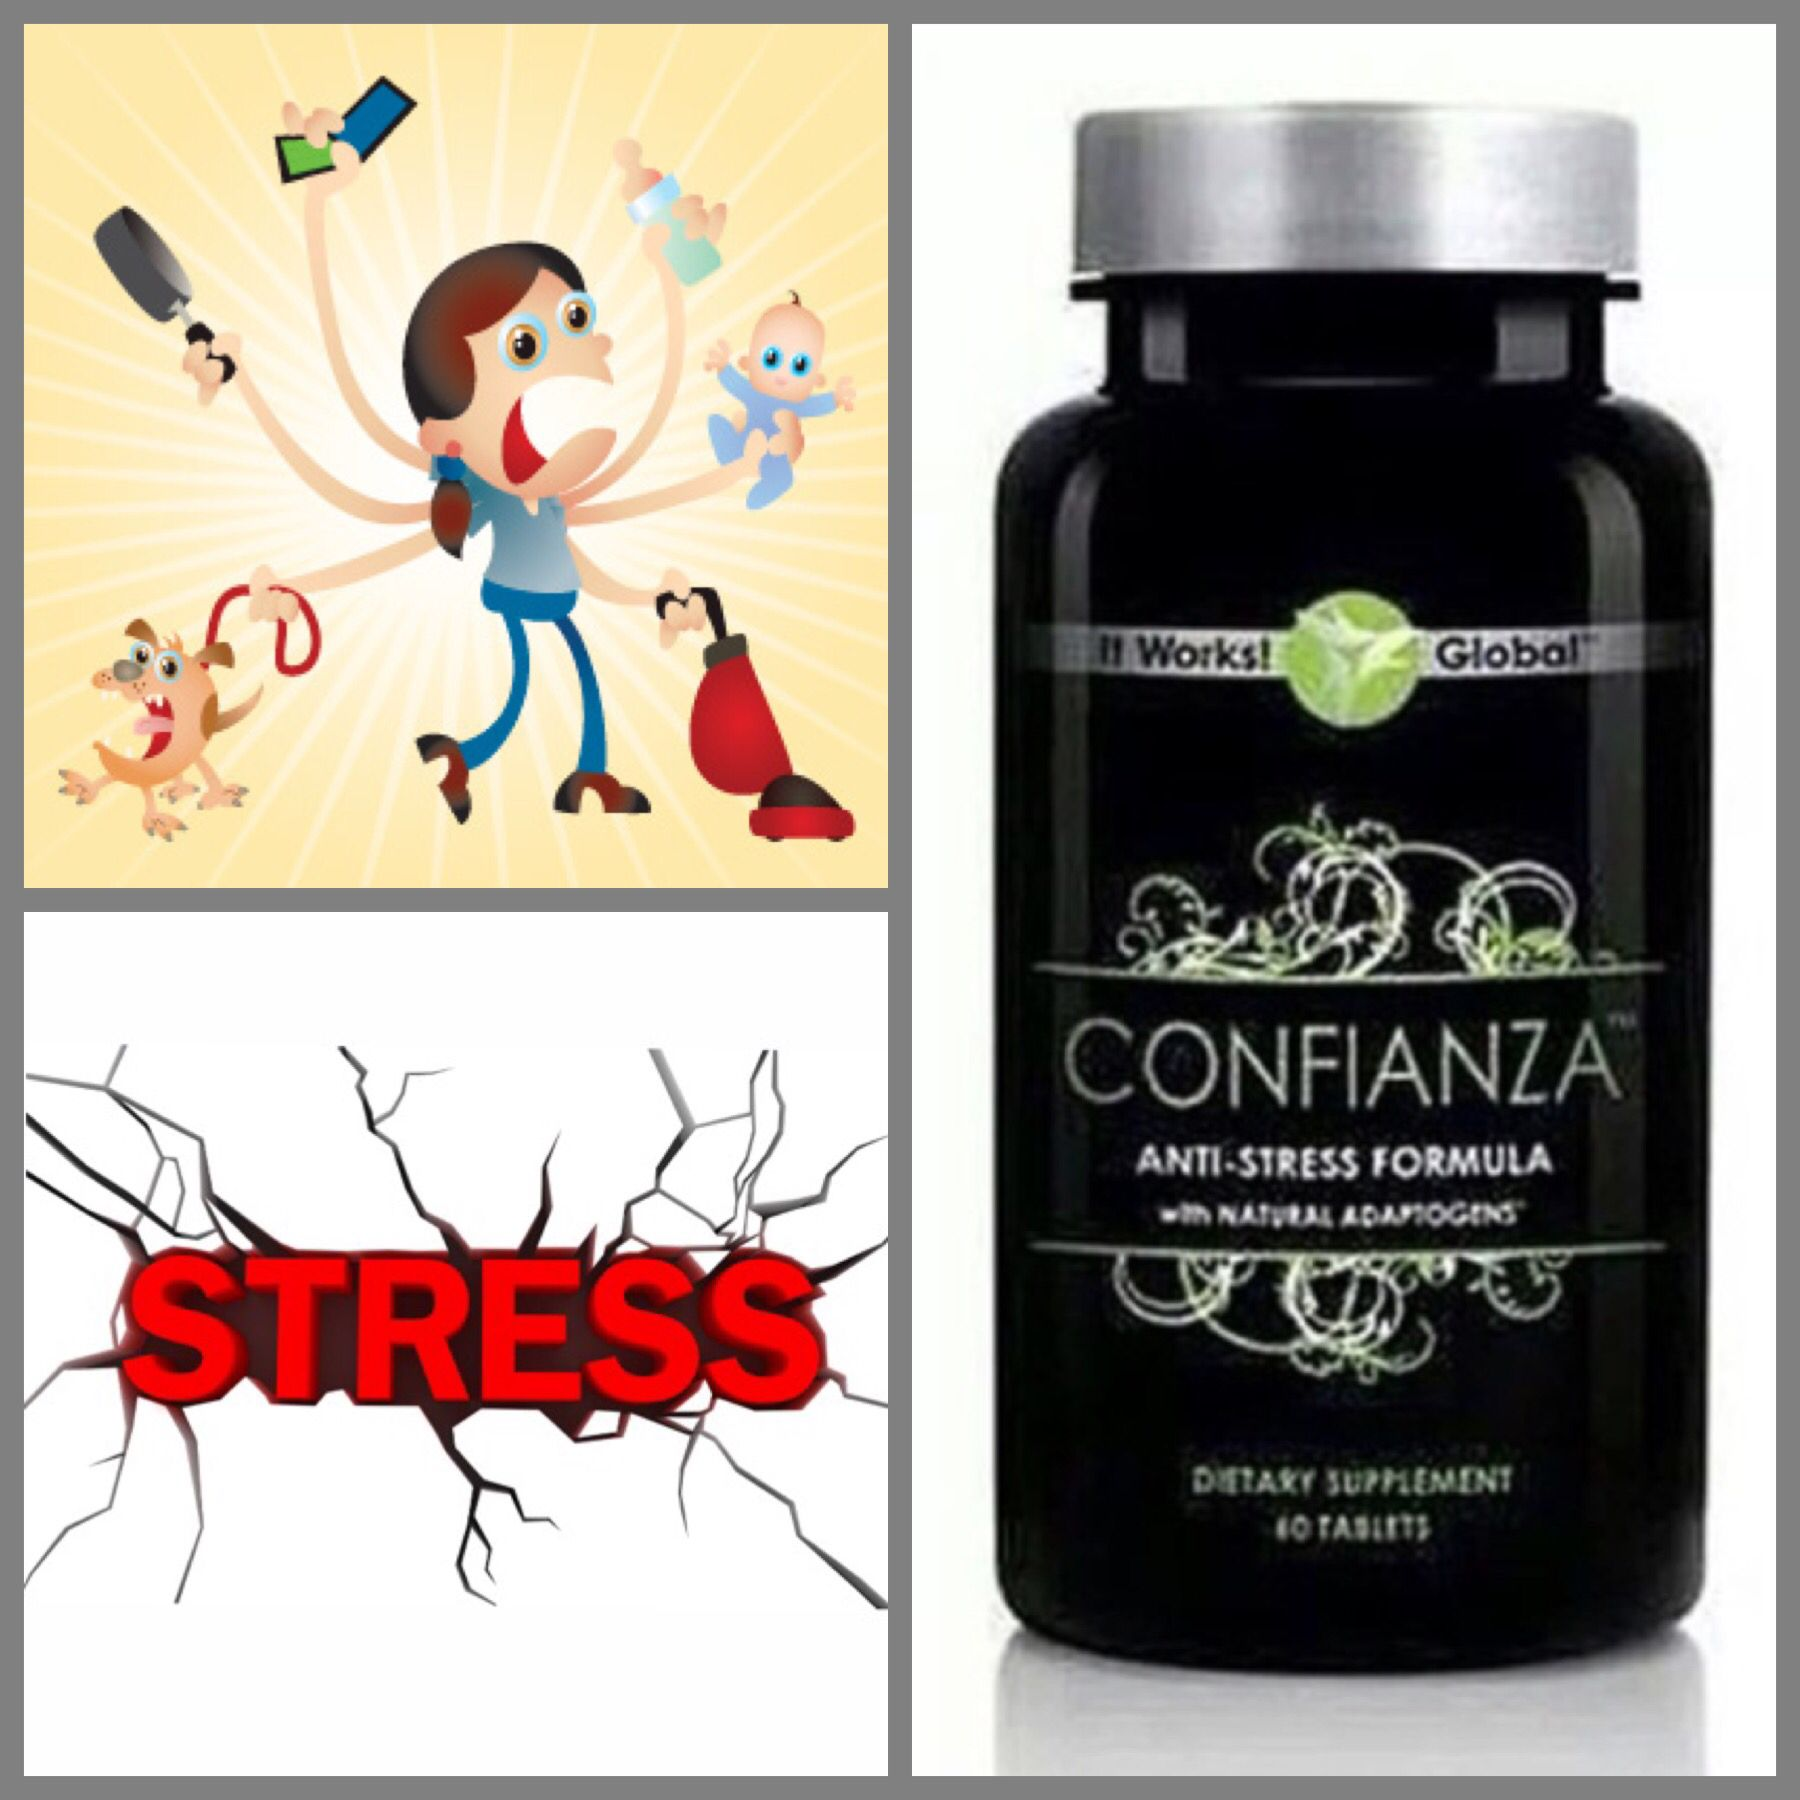 Pin by A SHY PRINCESS on ITWORKS It works, Anti stress